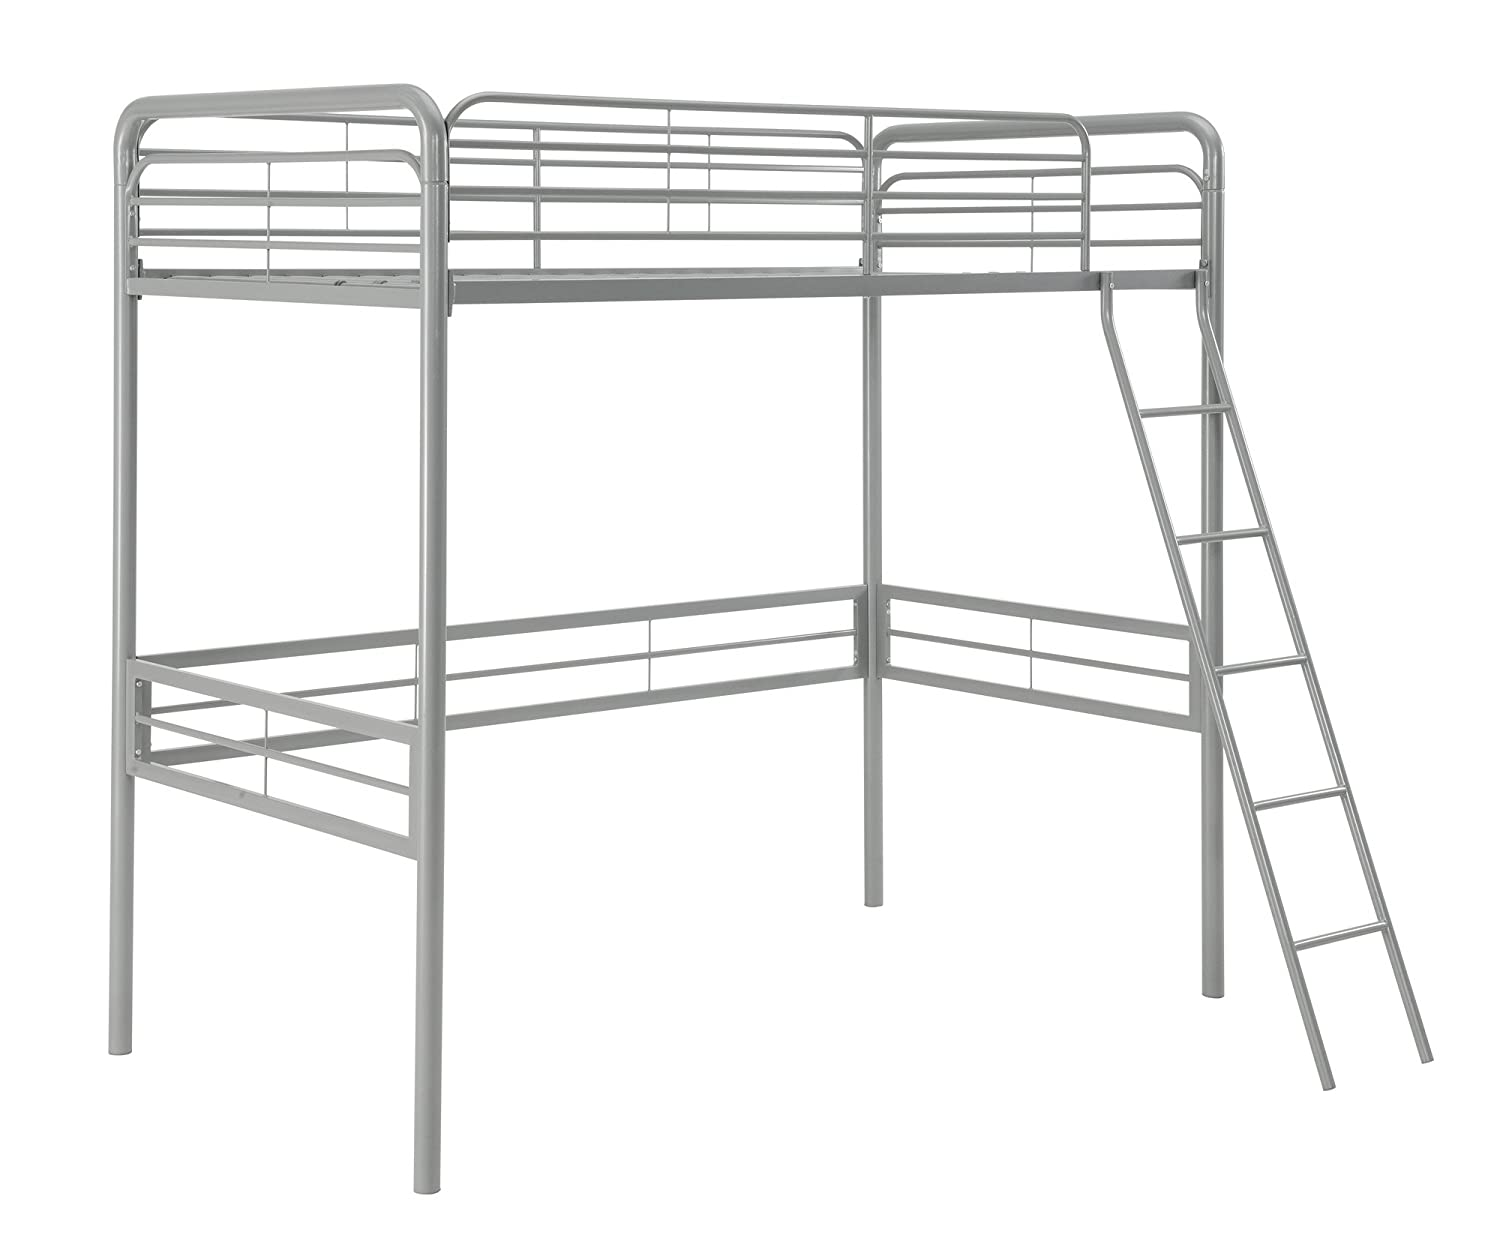 amazoncom dhp simple metal loft bed frame twin size silver kitchen u0026 dining